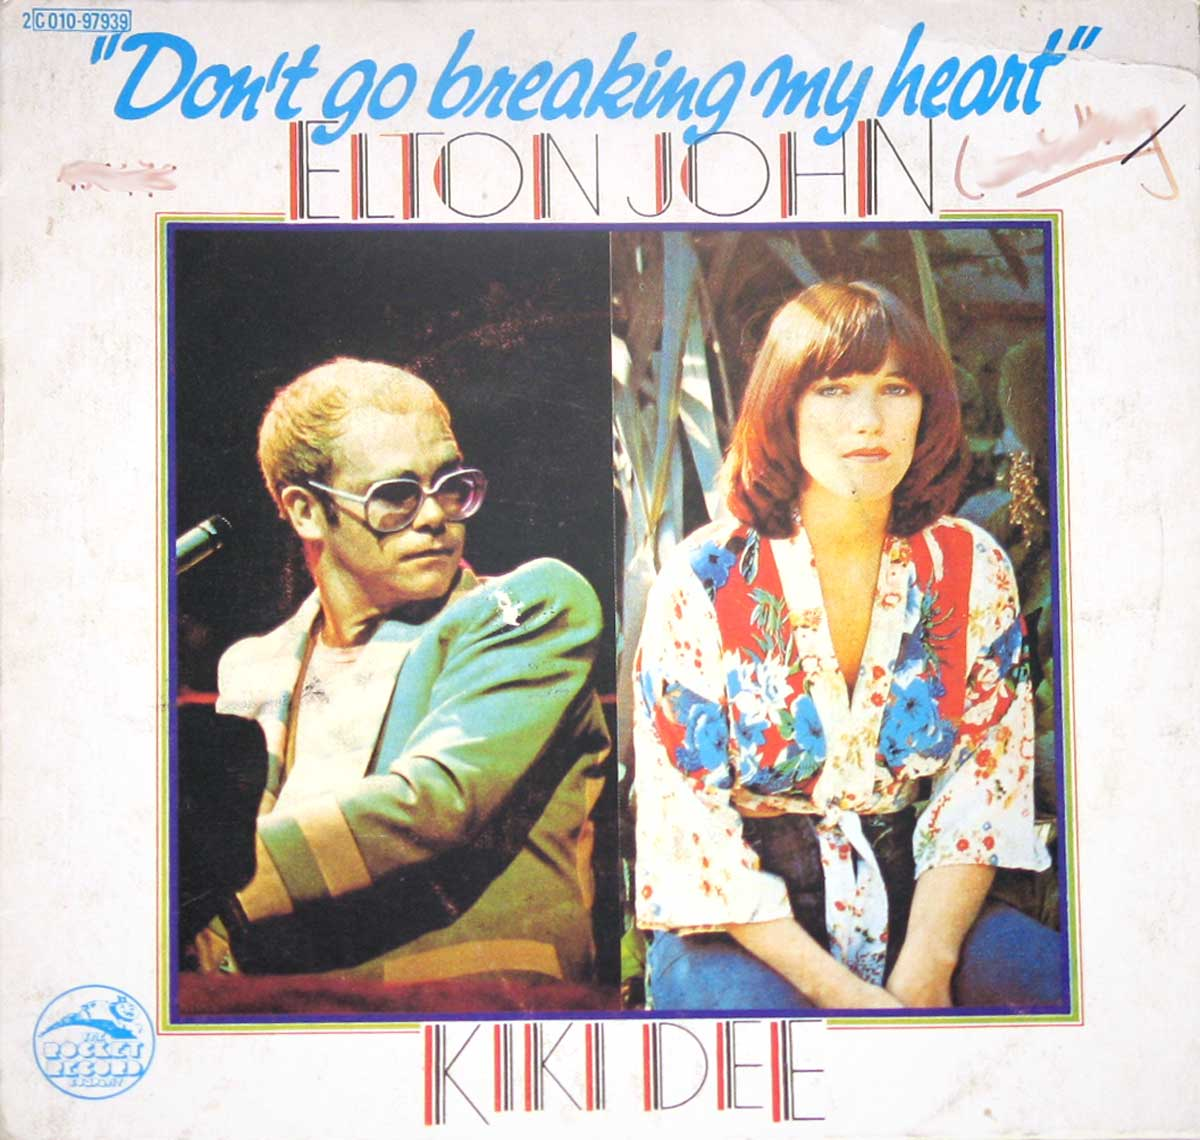 large photo of the album front cover of: ELTON JOHN & KIKI DEE - Dont go breaking my Heart